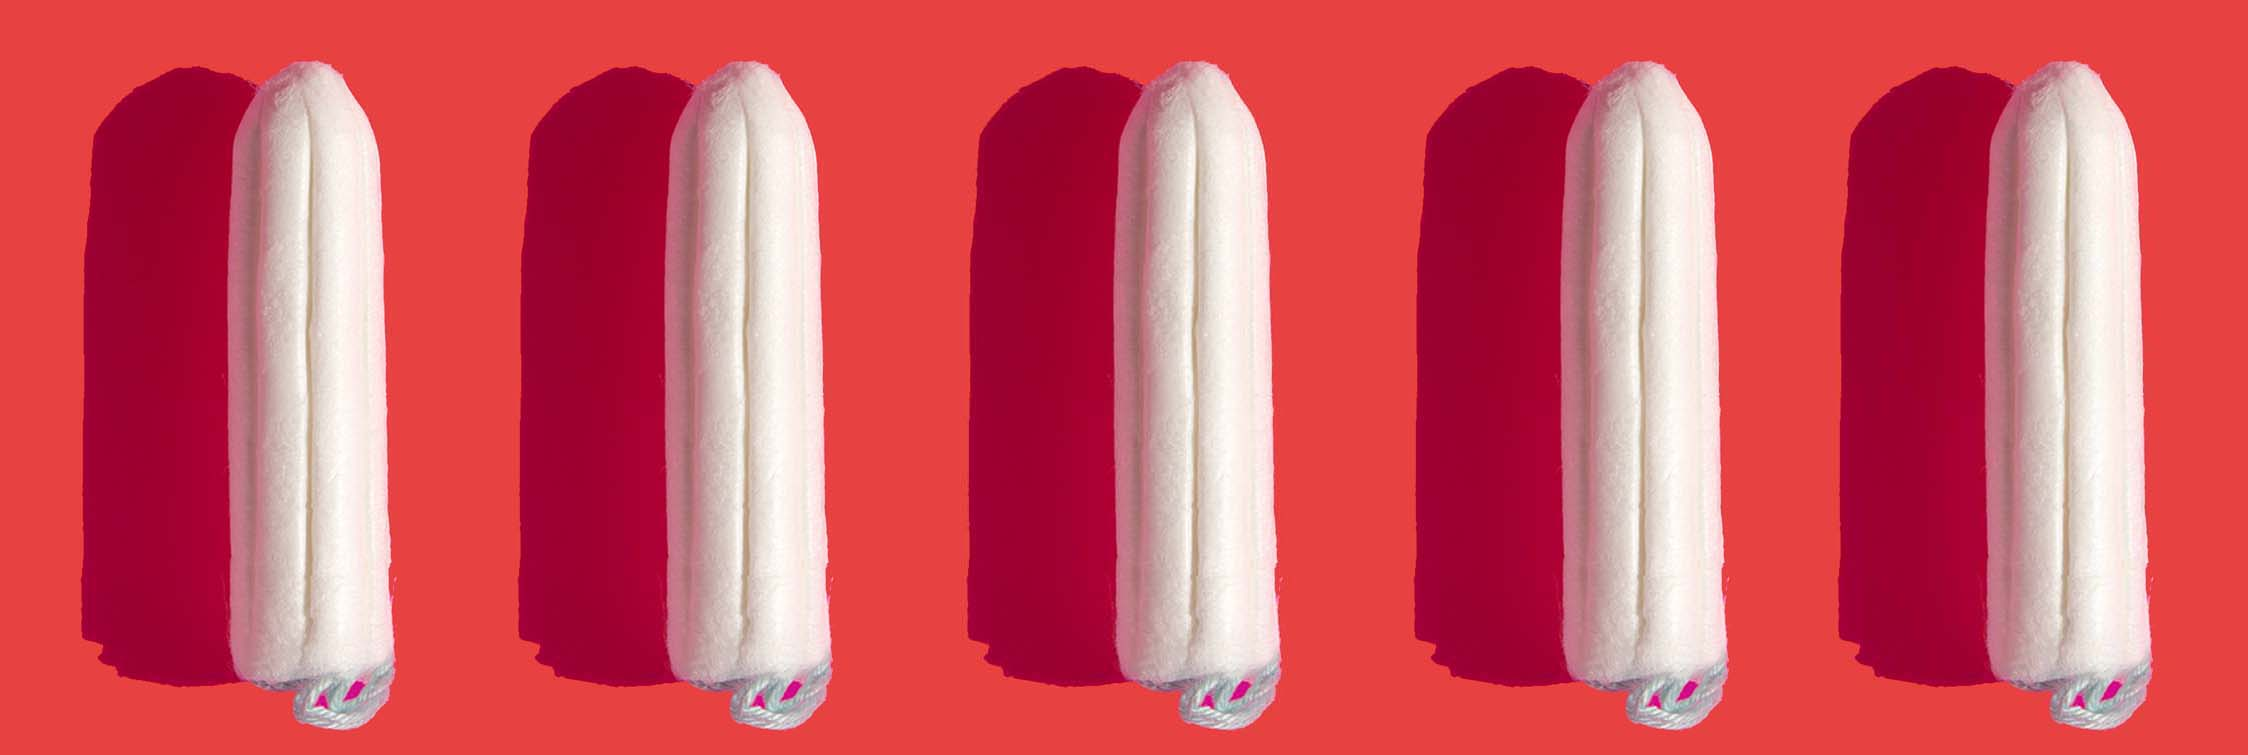 Tampons-1